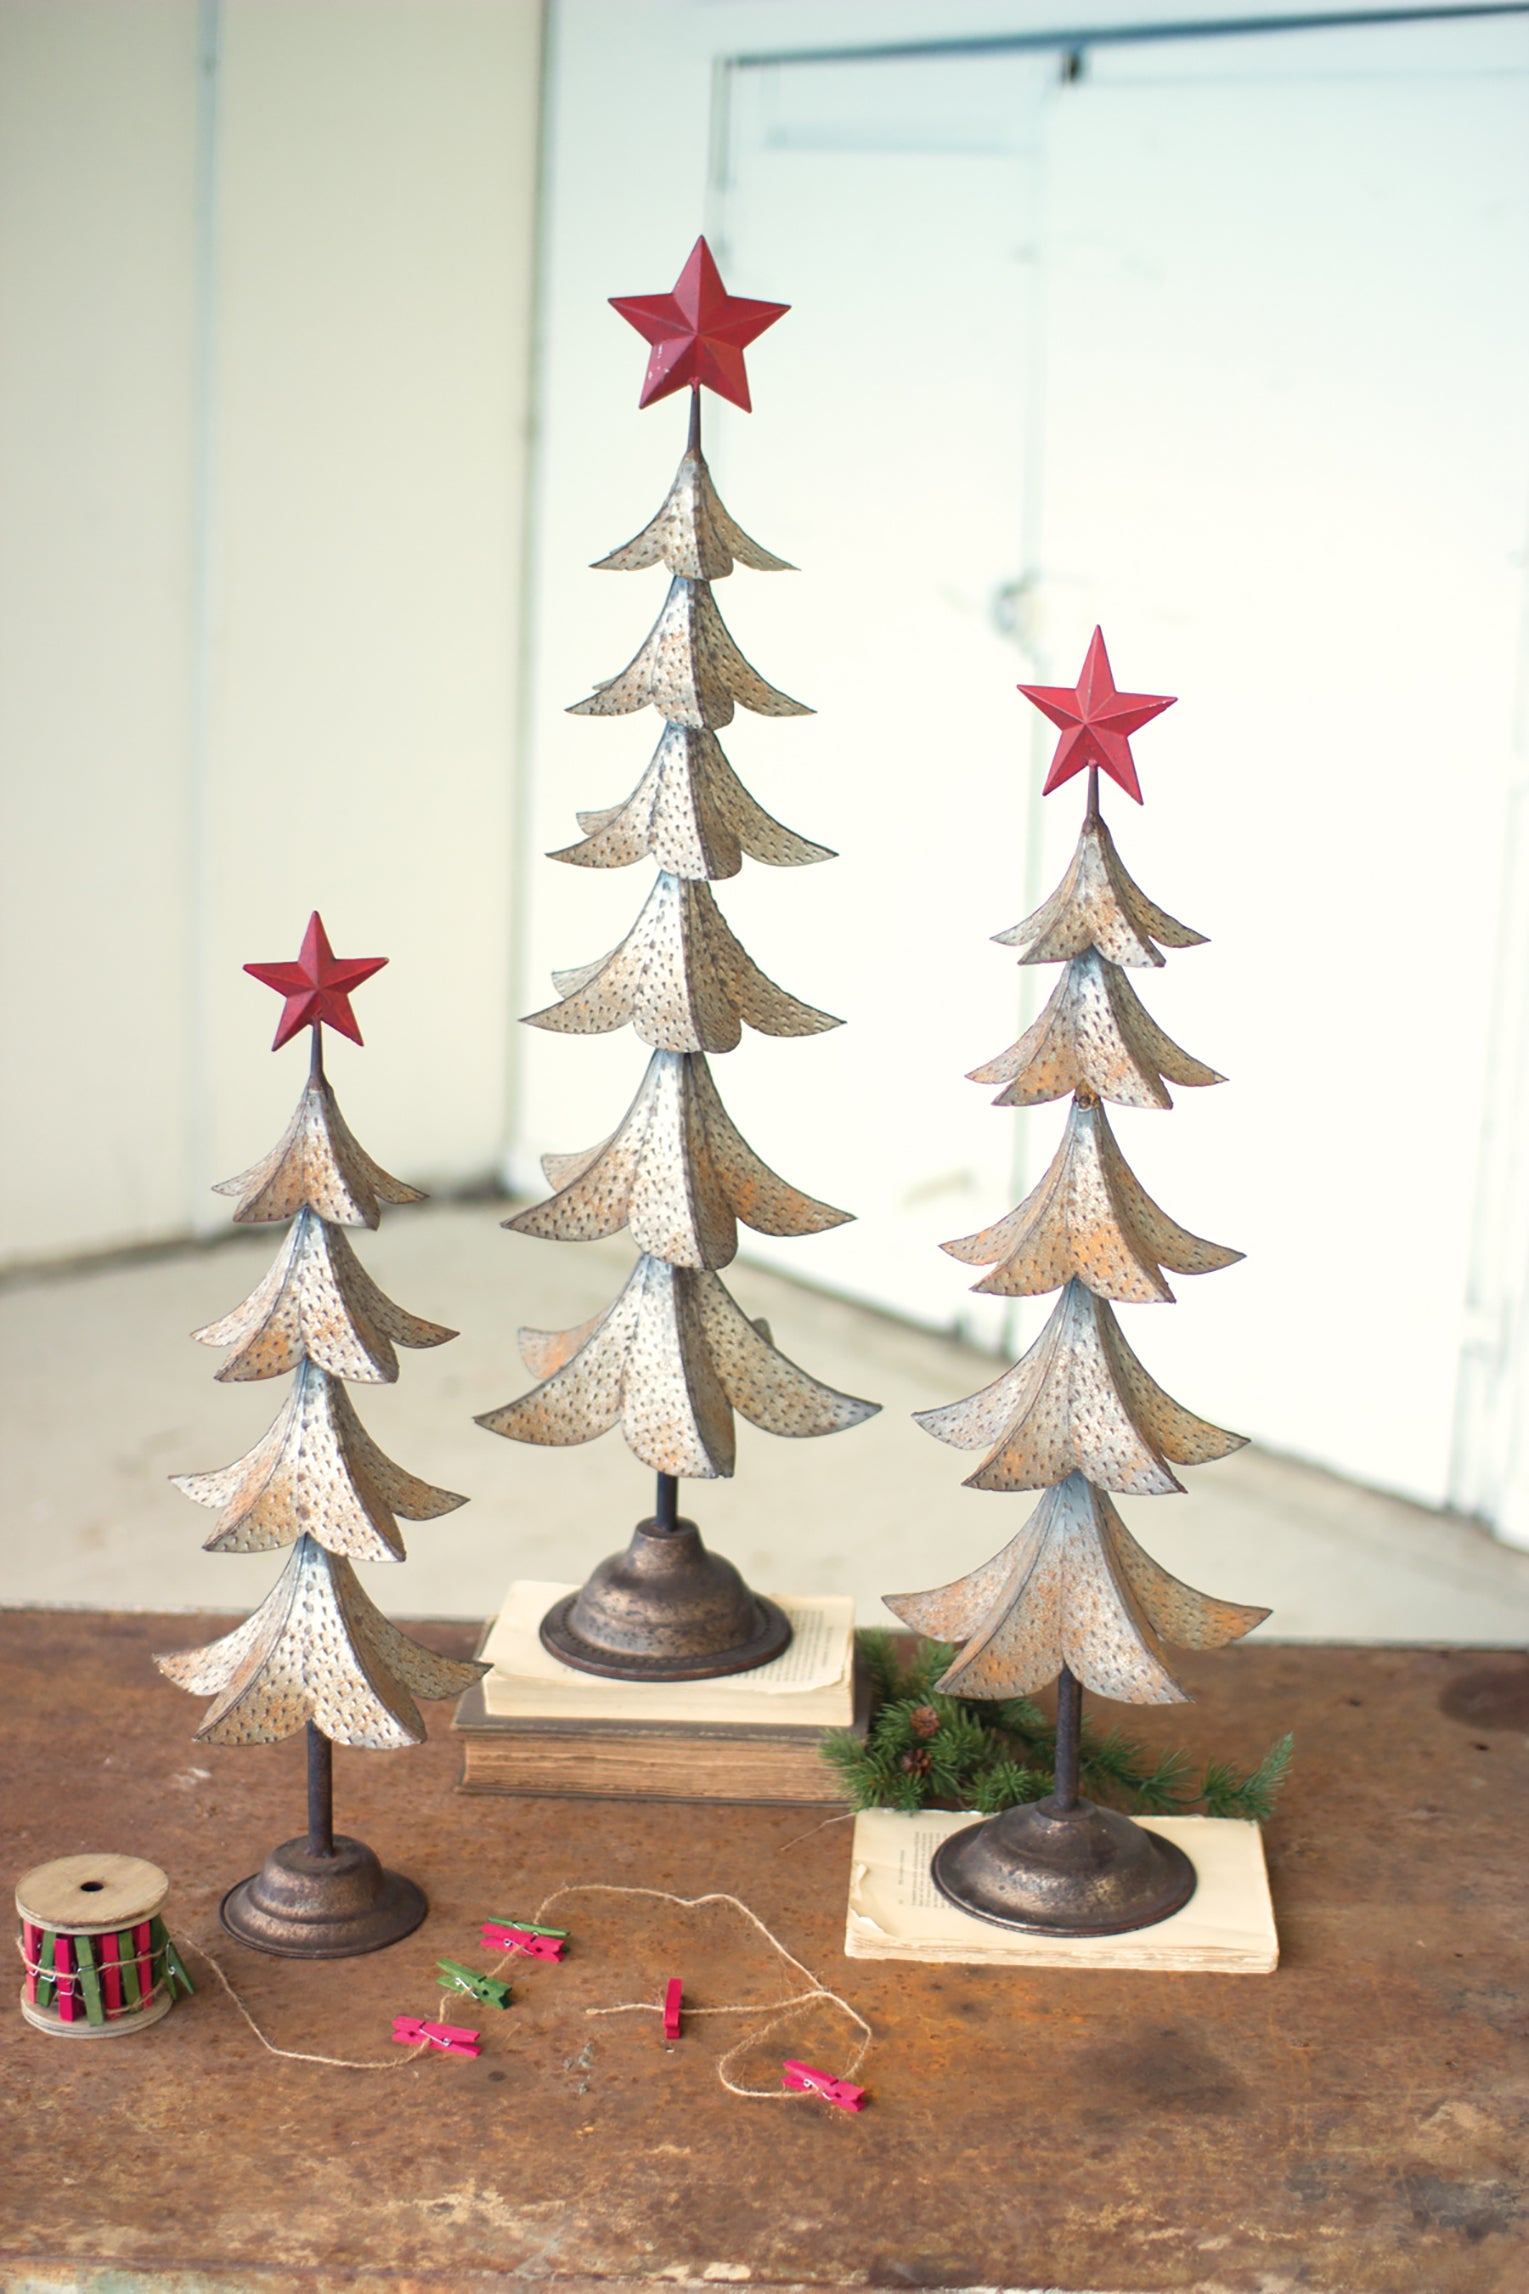 Metal Vintage Style Christmas Trees - Set of 3